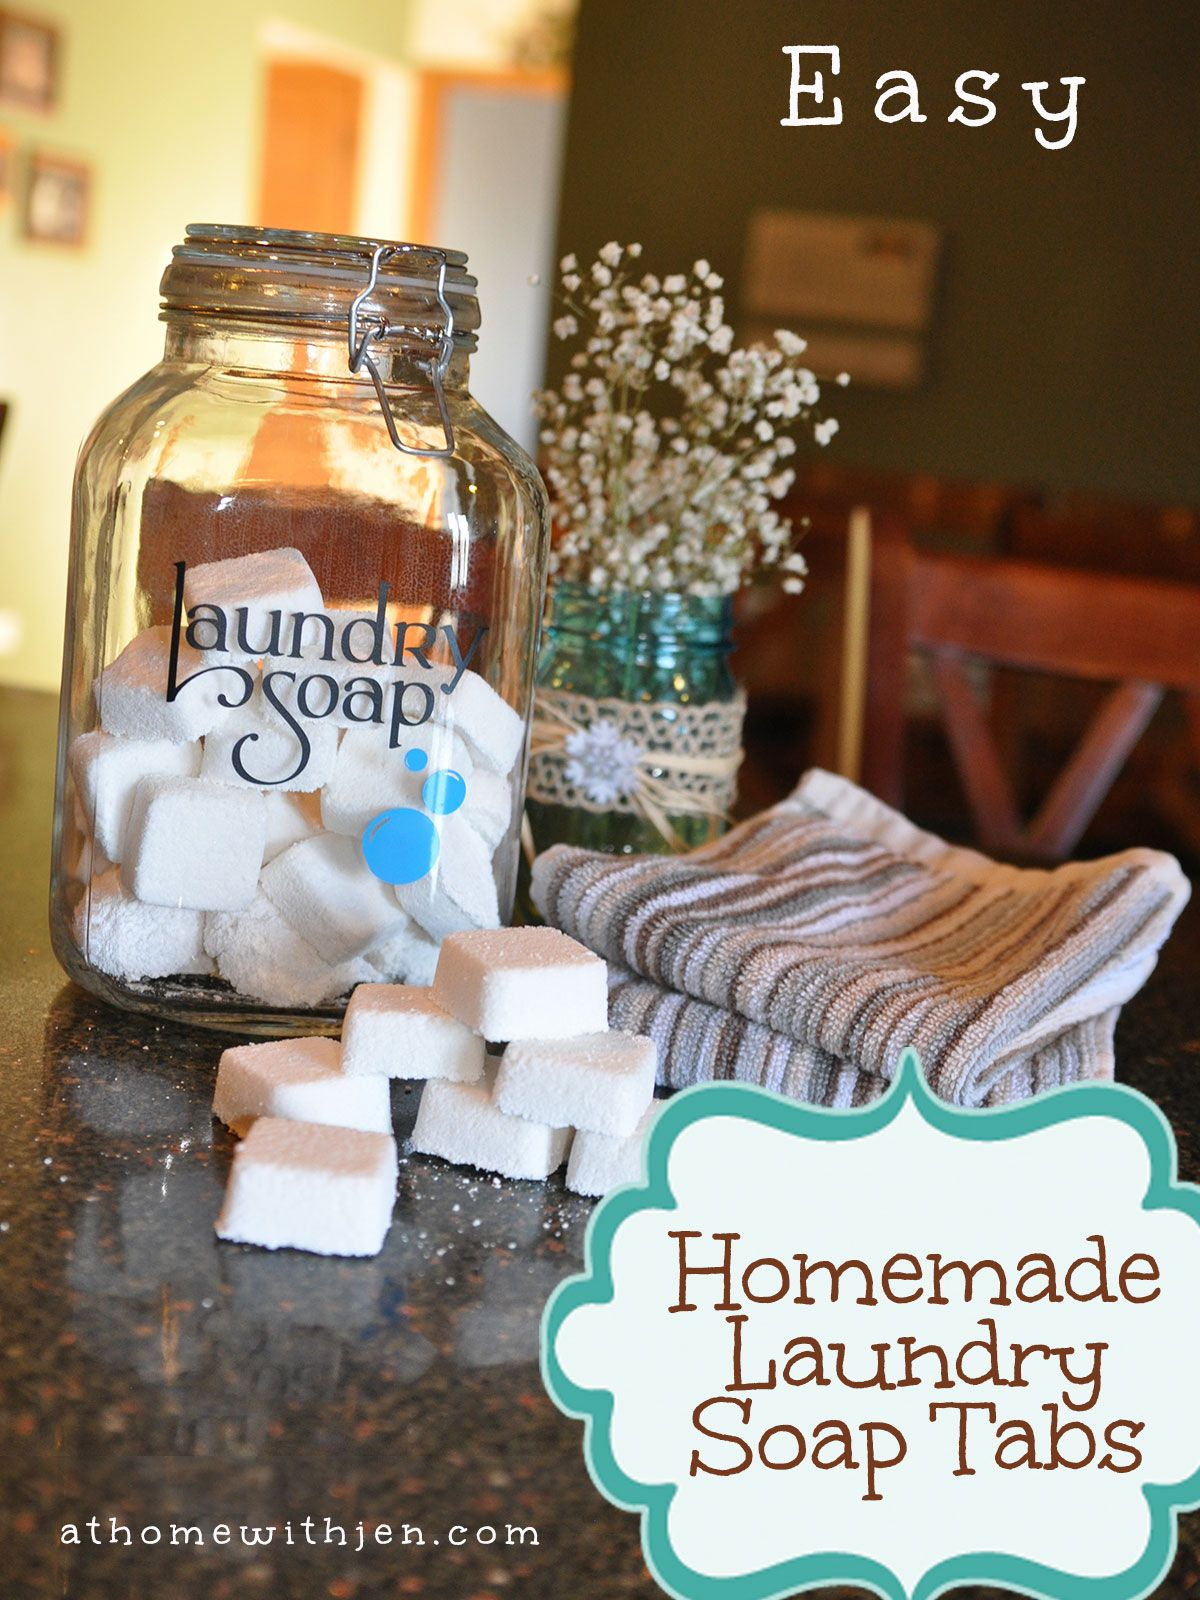 How to make Homemade Laundry Soap Tabs